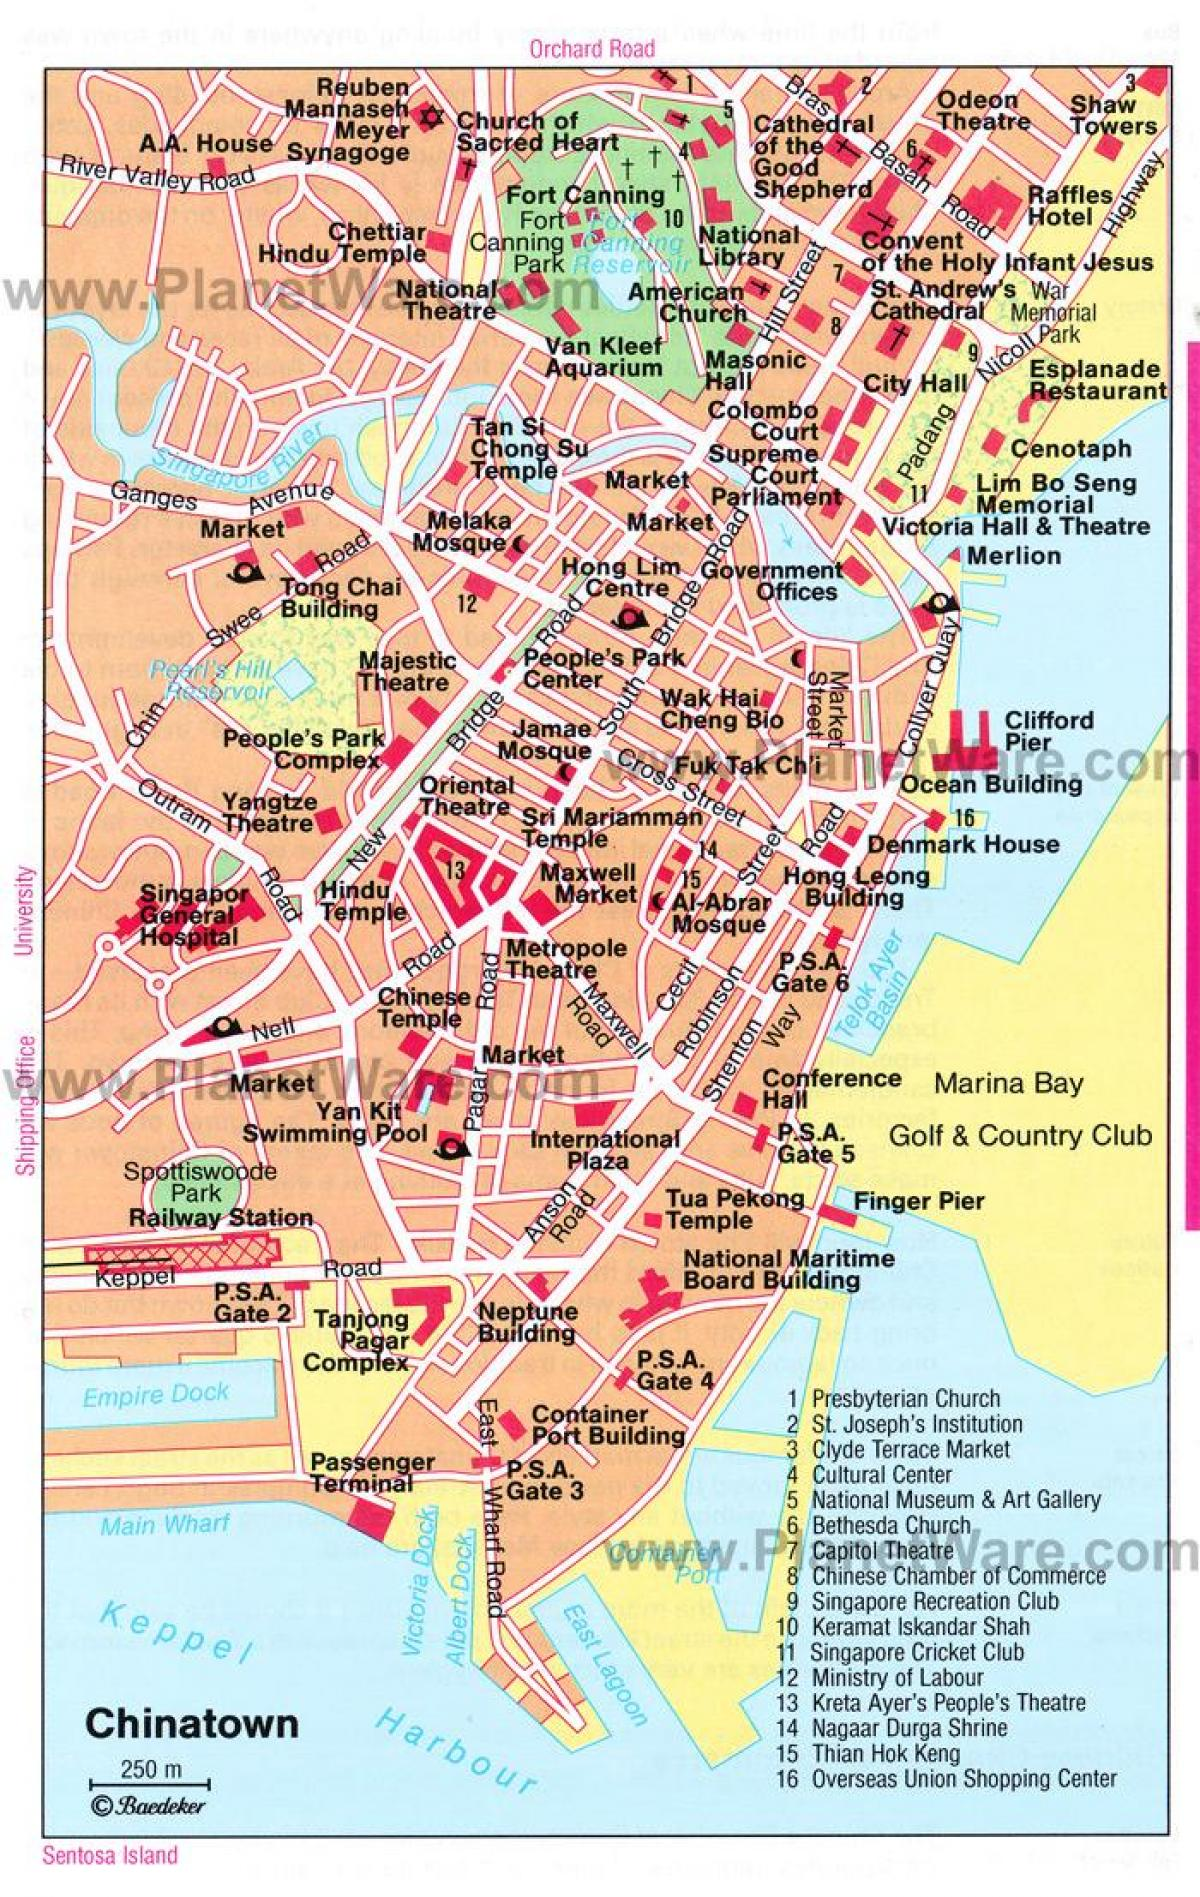 Singapore chinatown map map - Map of Singapore chinatown map ... on weeksville map, five points map, terminal e map, new york city map, broadway play map, museum park map, horner park map, ny public library map, clason point map, central park map, downtown nyc map, park west map, lower manhattan map, the gallery at market east map, forbidden island map, east loop map, gold mountain map, the west village map, assembly square map, greenwich village map,